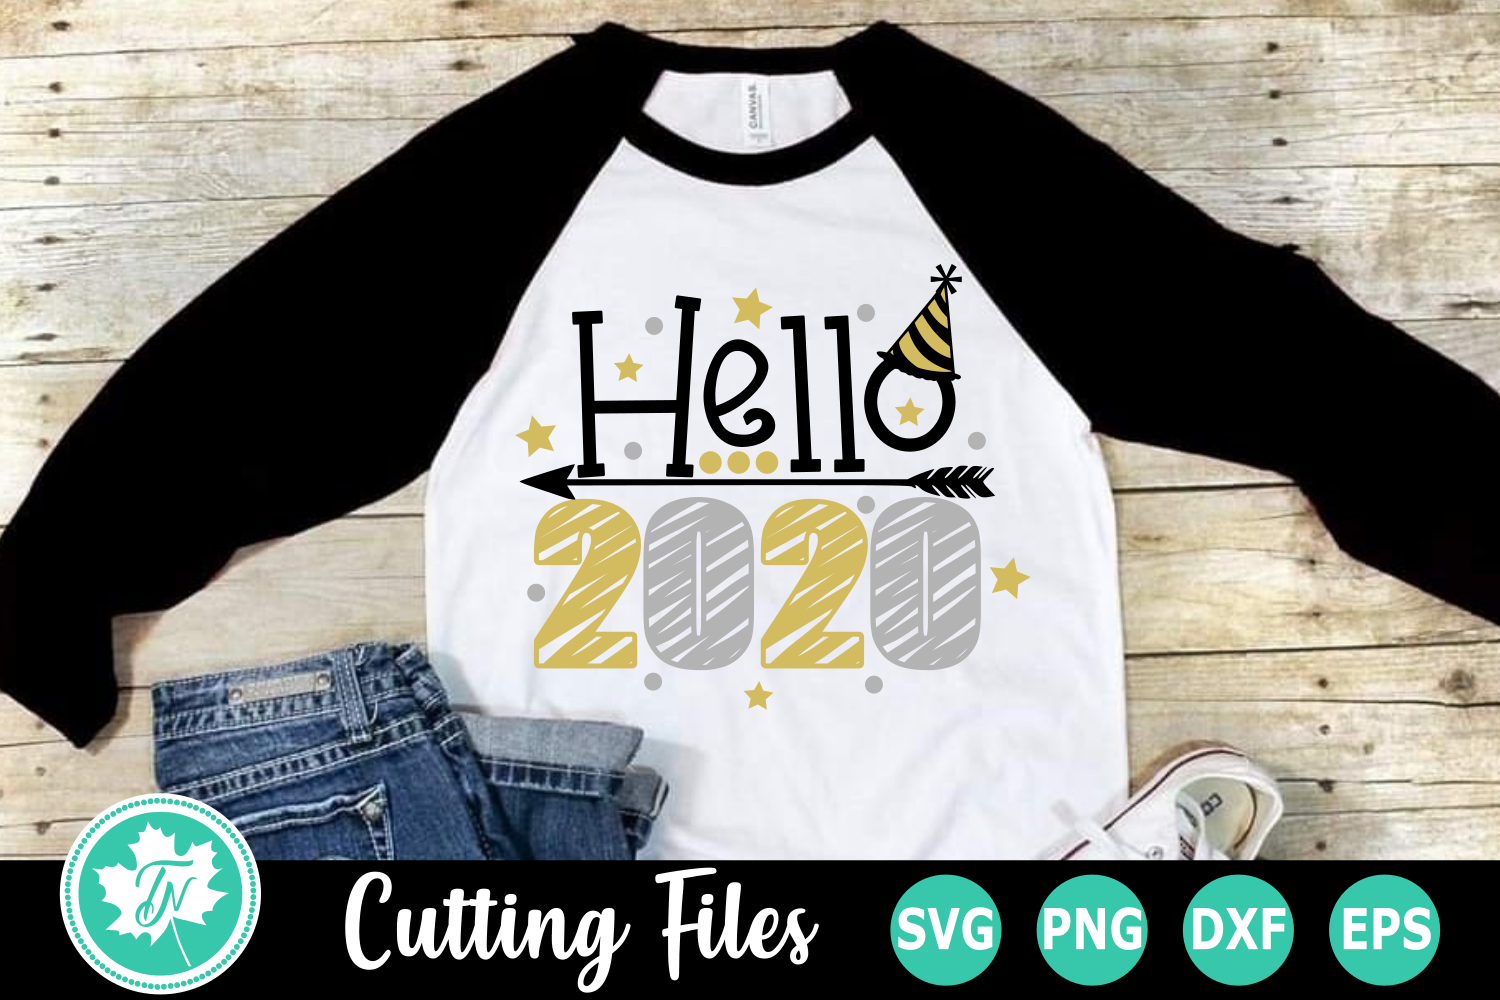 Helo 2020 - A New Year's SVG Cut File example image 1